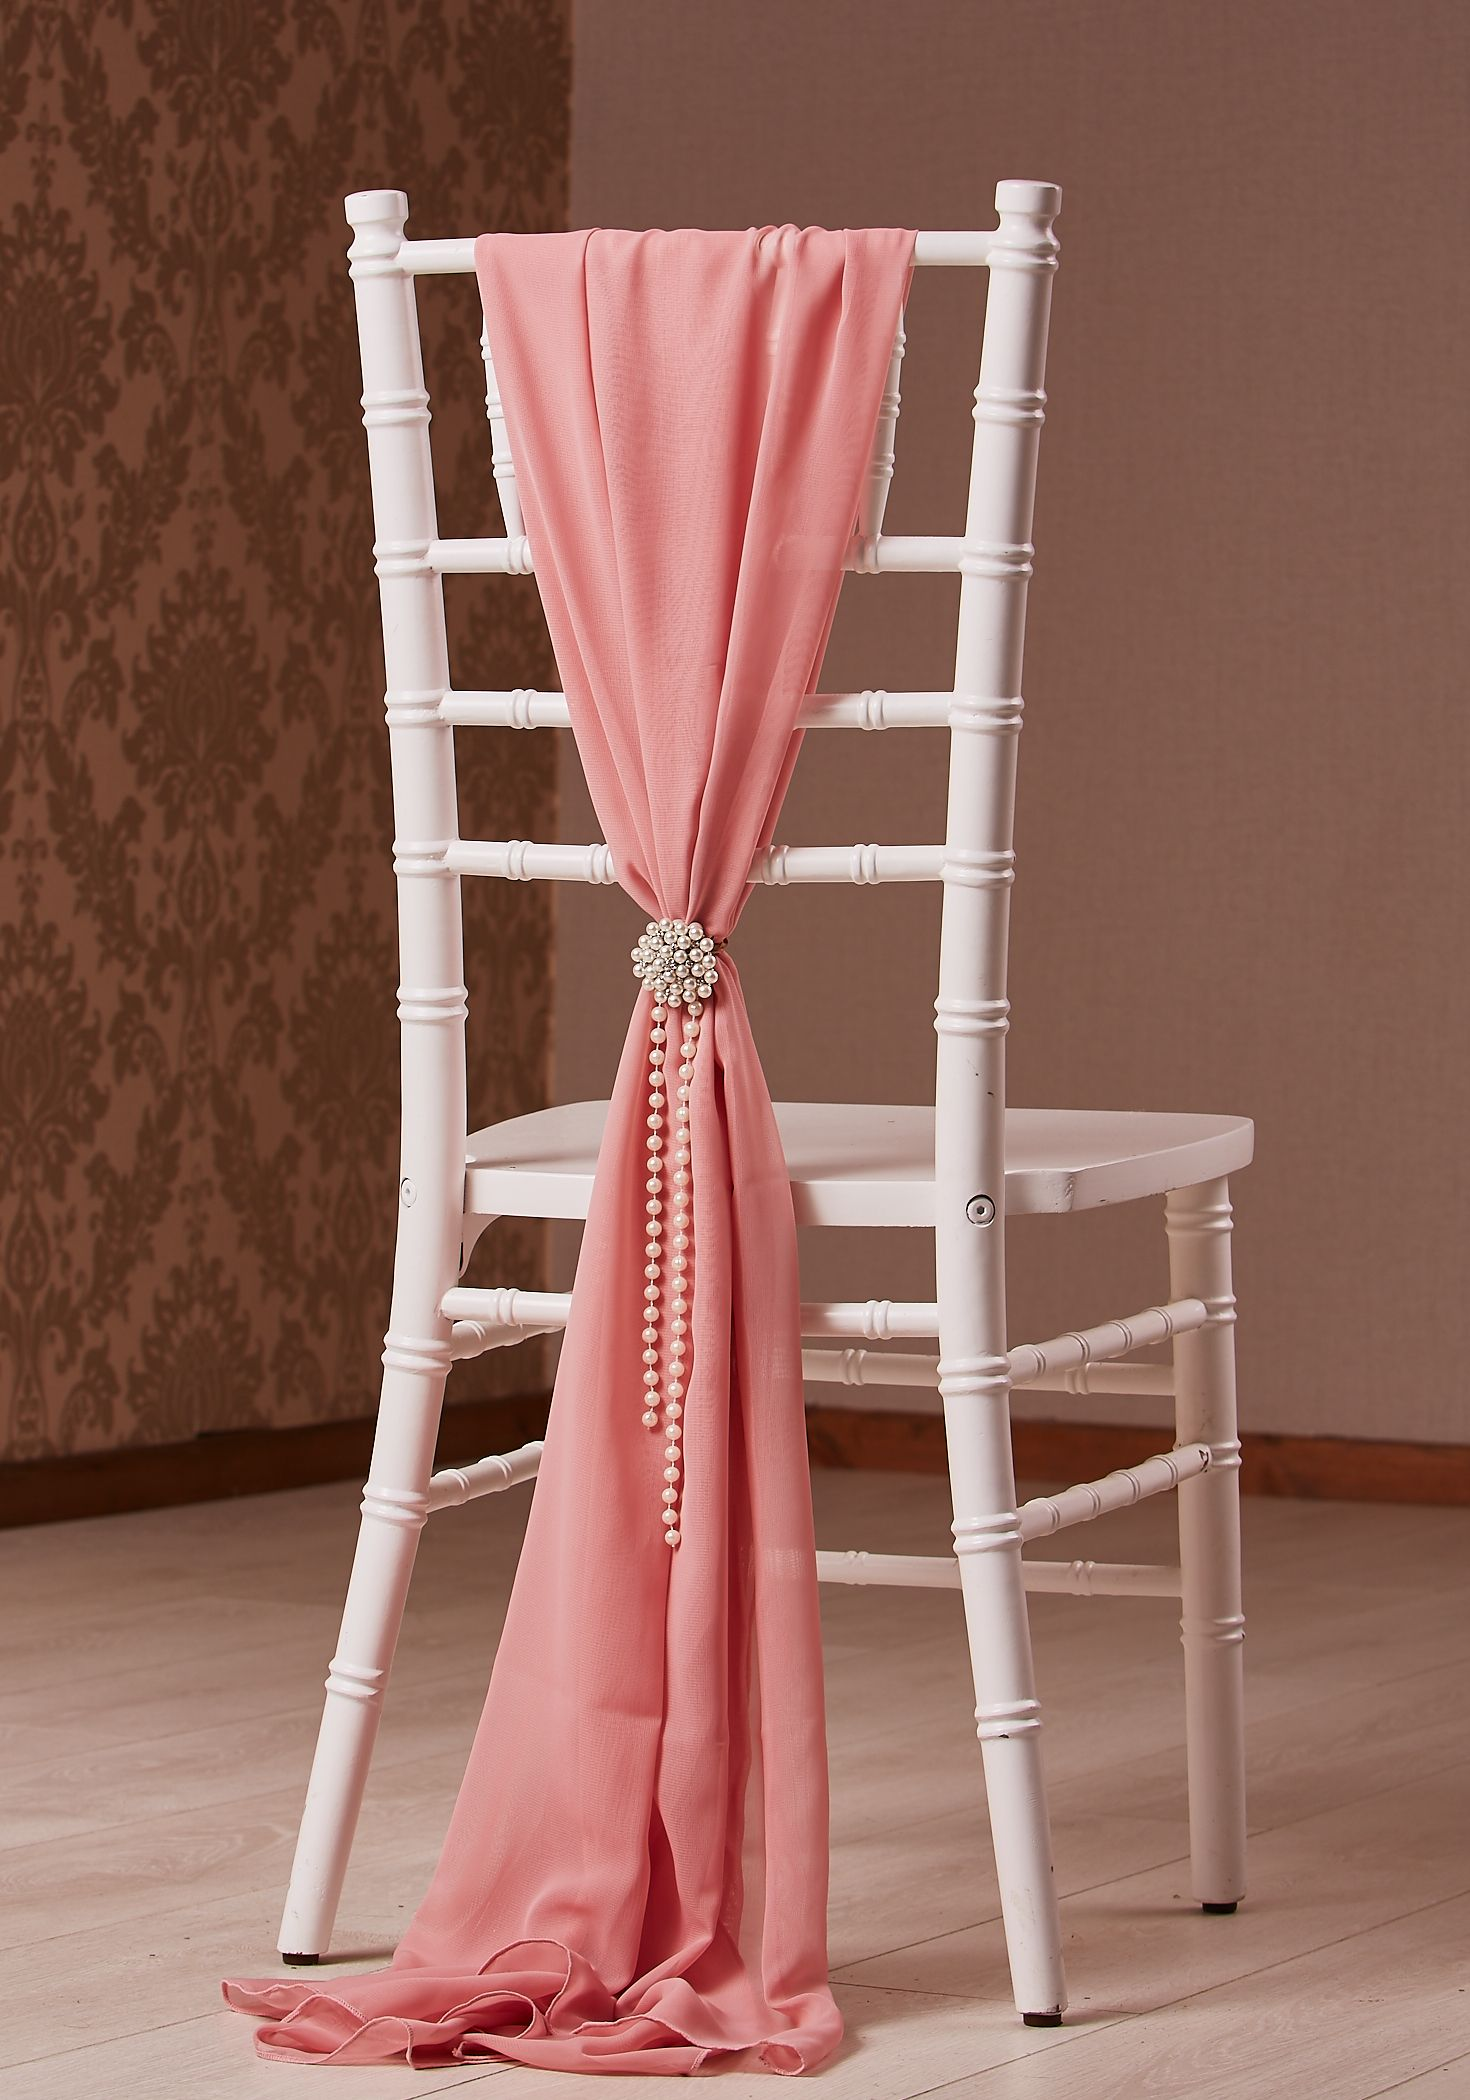 CHIAVARI CHAIR STYLED FOR A WEDDING WITH DUSKY PINK CHIFFON DROP